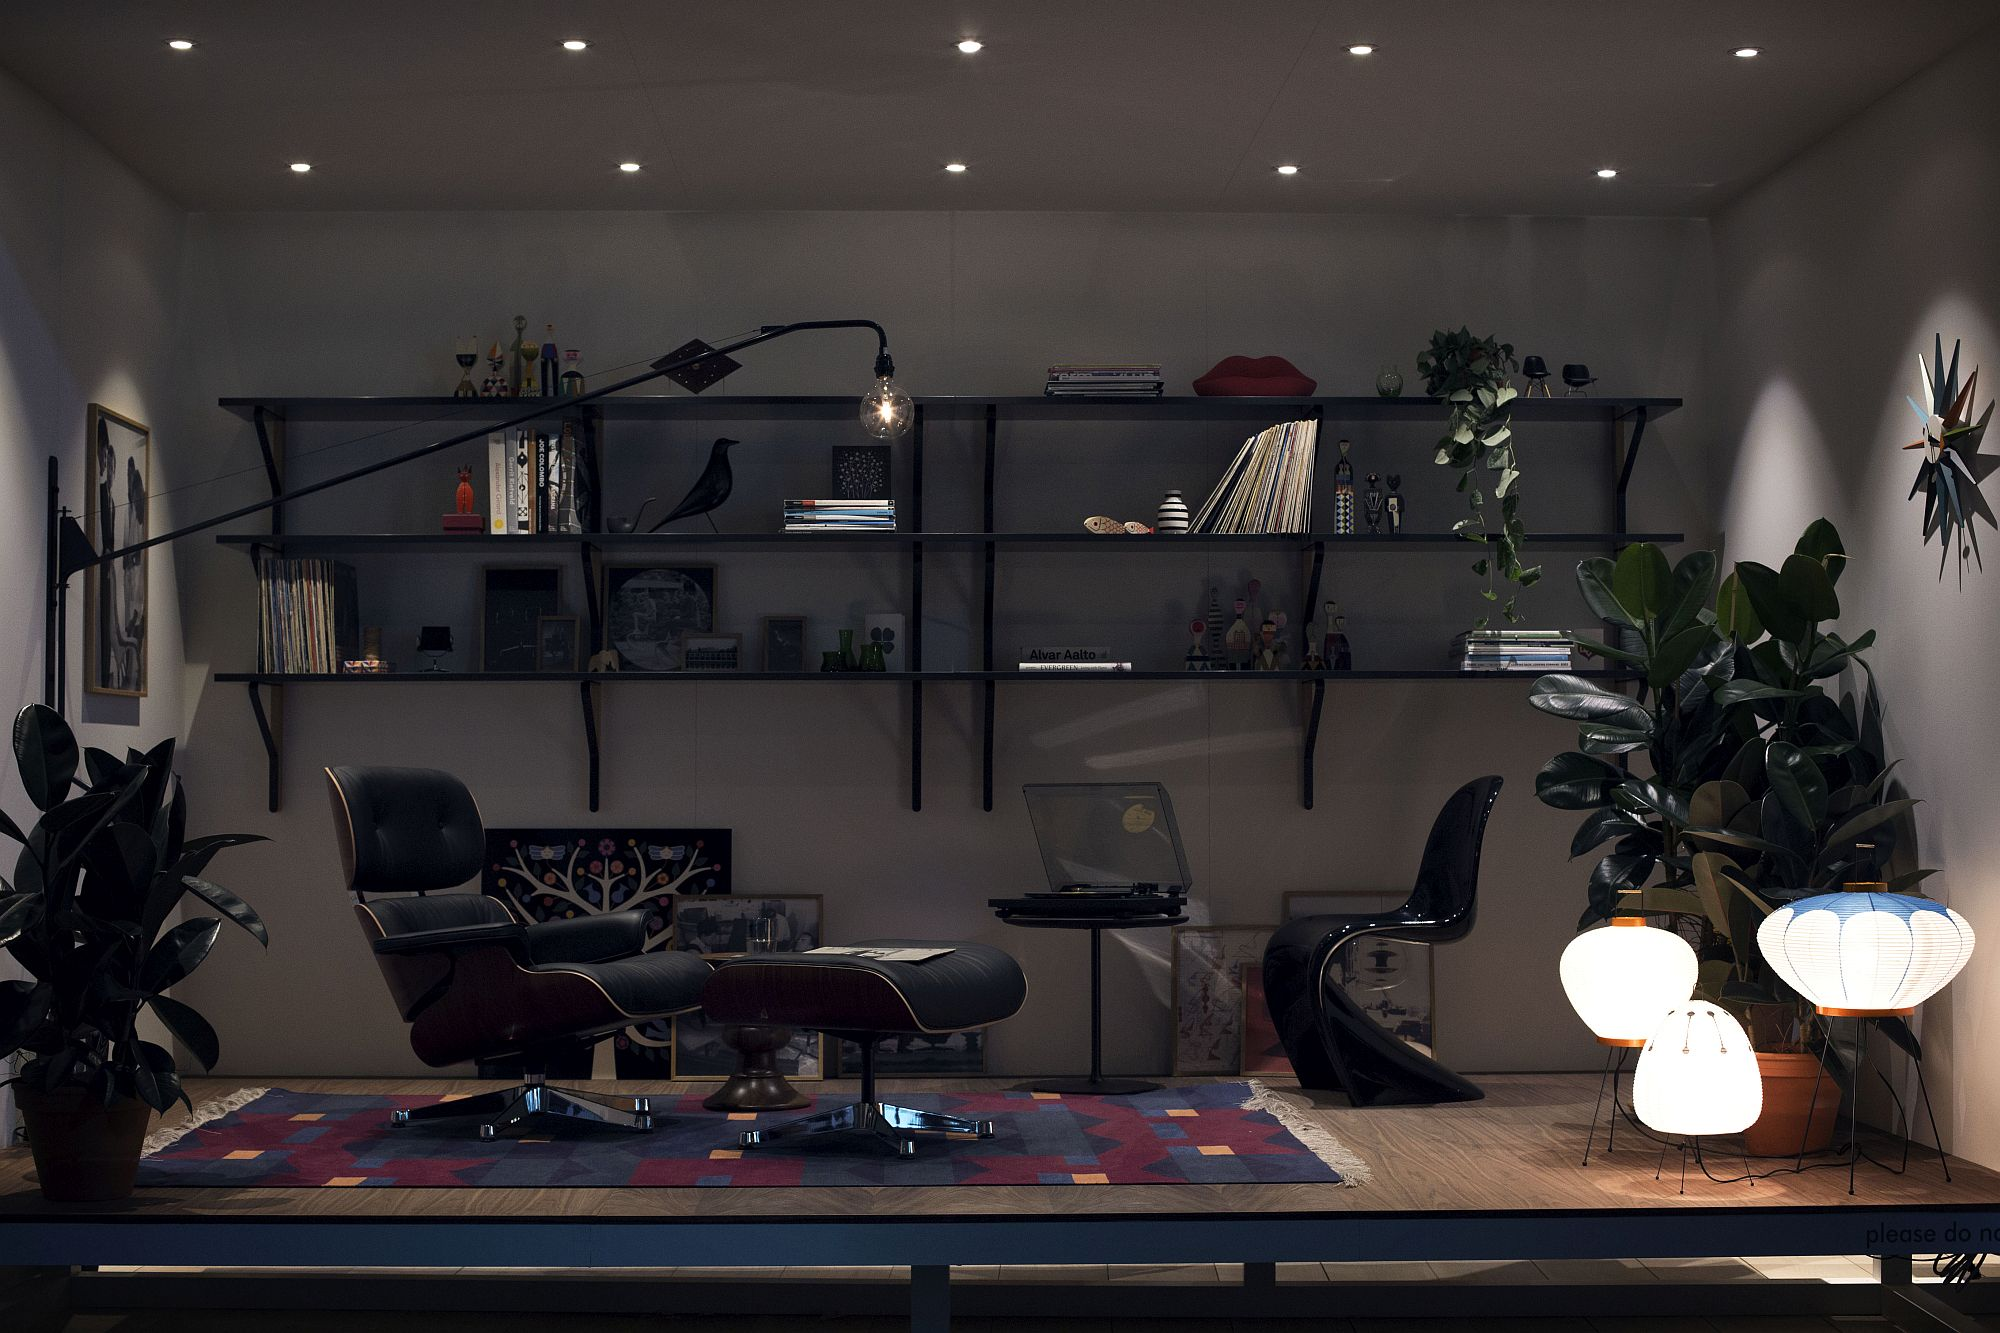 Eames-Lounger-Panton-Chair-and-sculptural-lighting-for-the-sensational-office-space